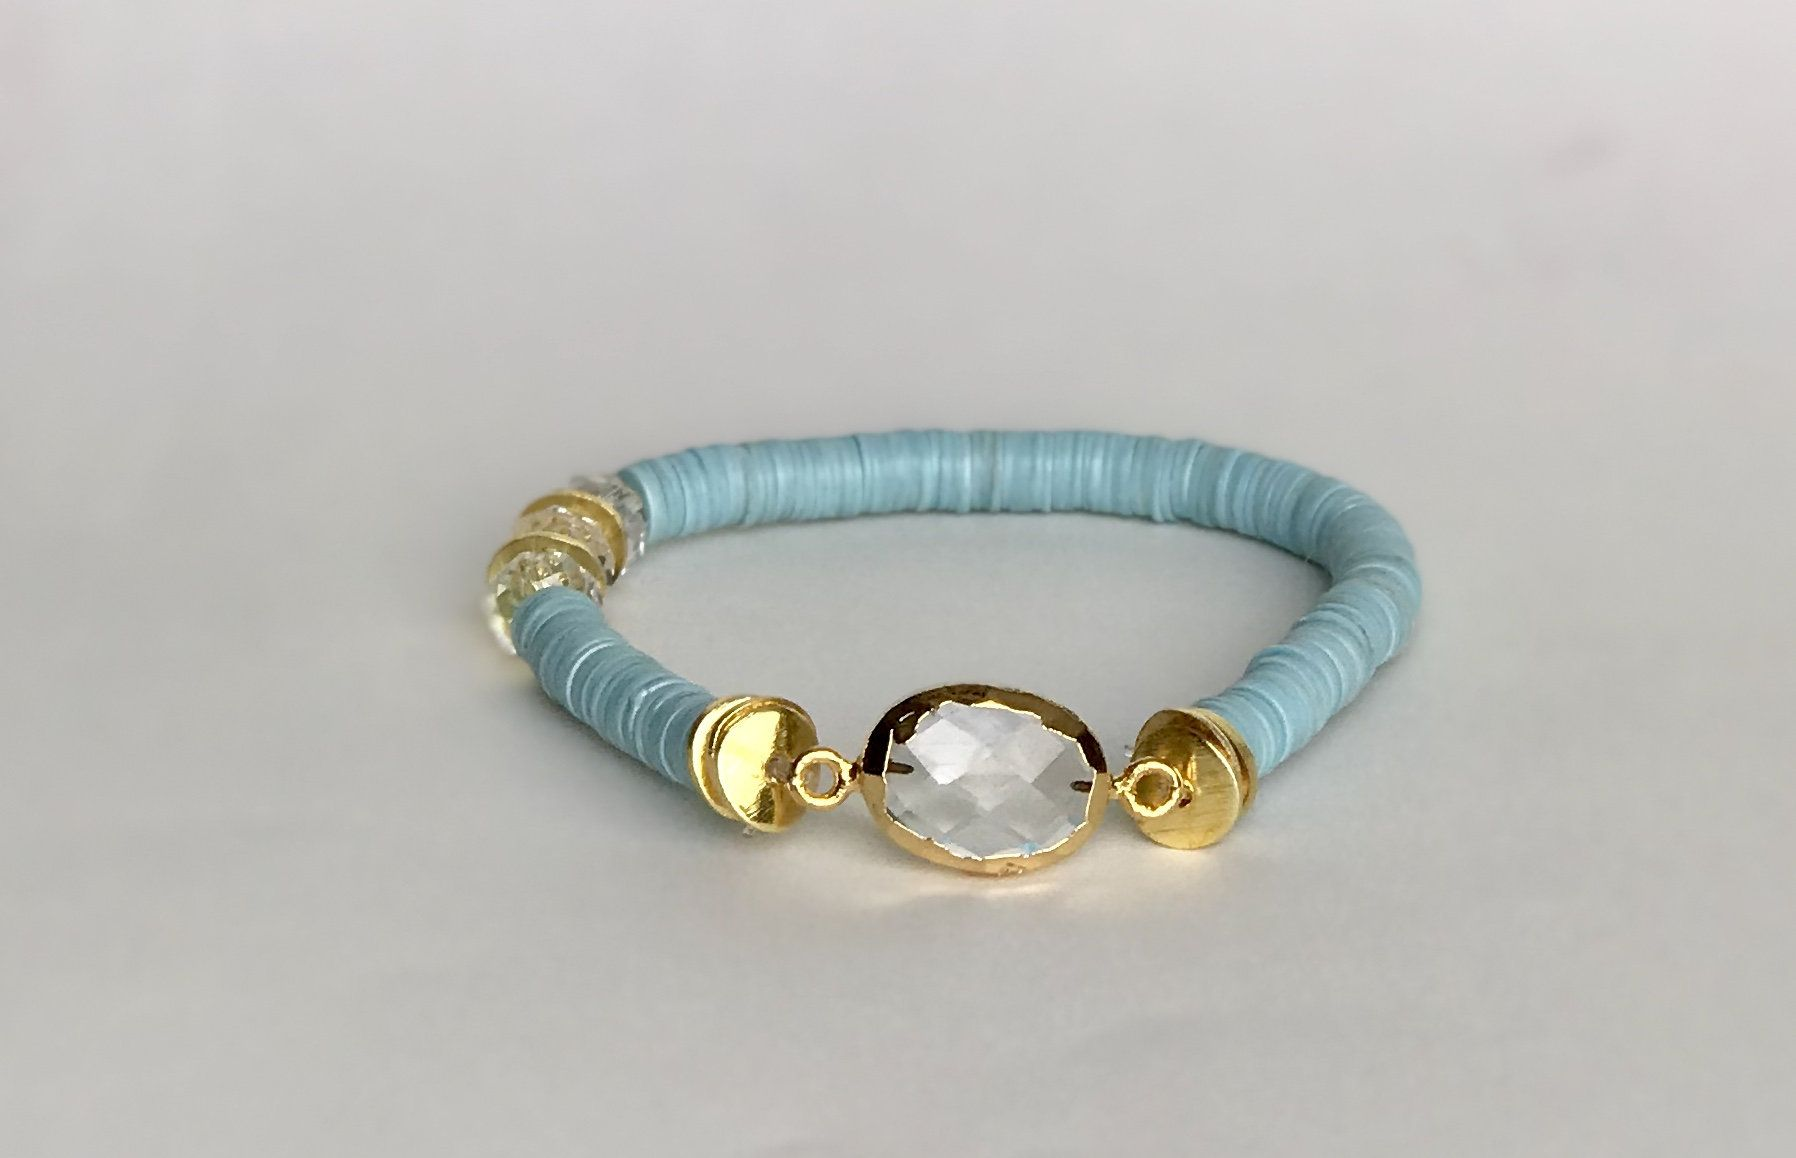 6mm Turquoise Disc Bracelet With Clear Electroplated